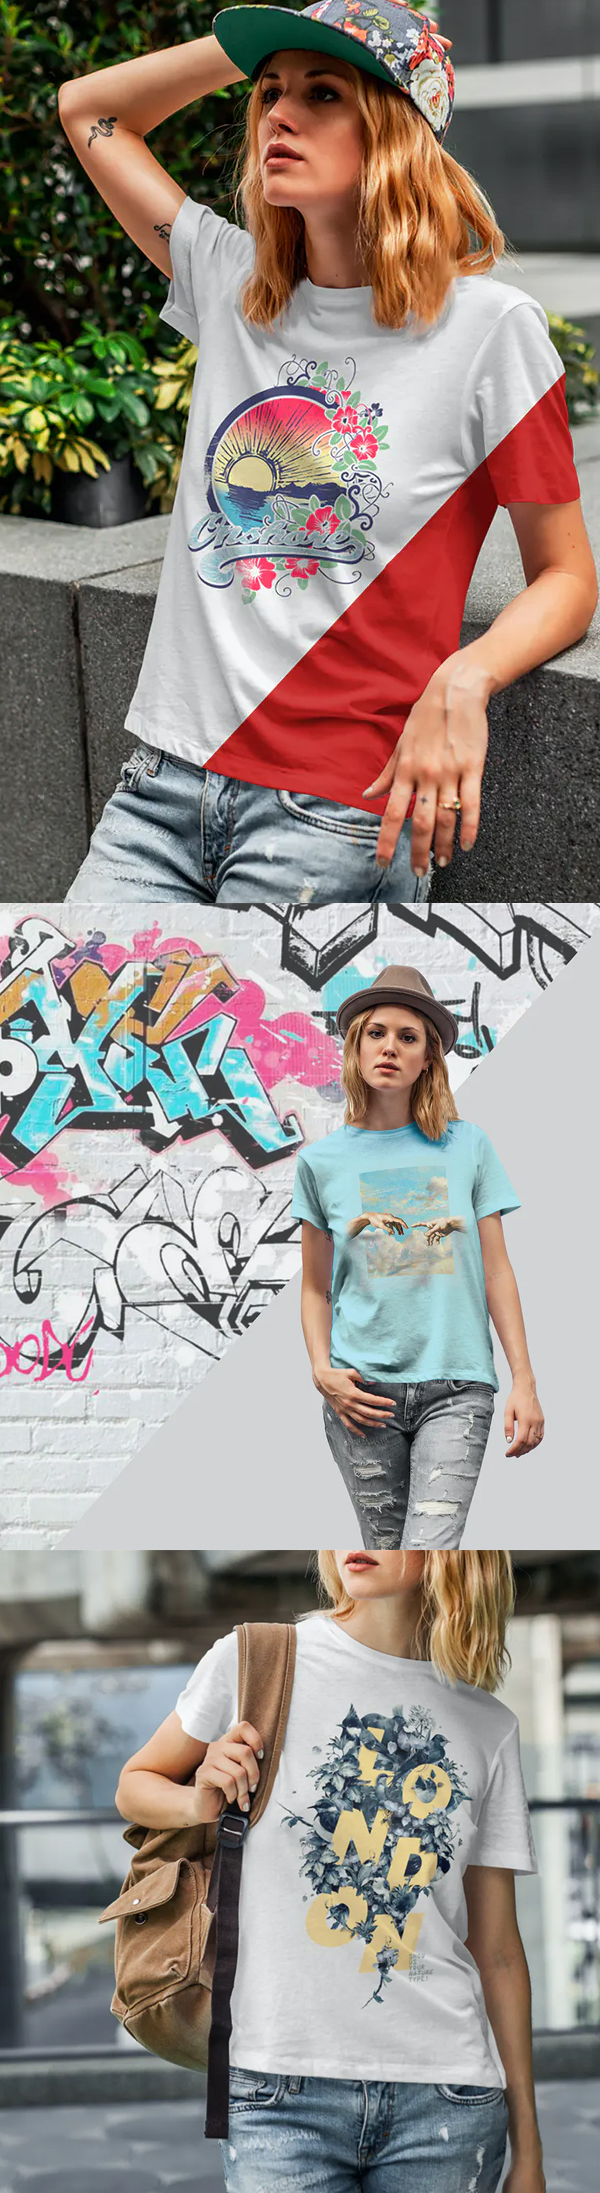 T-Shirt Mock-Up's Casual Girl